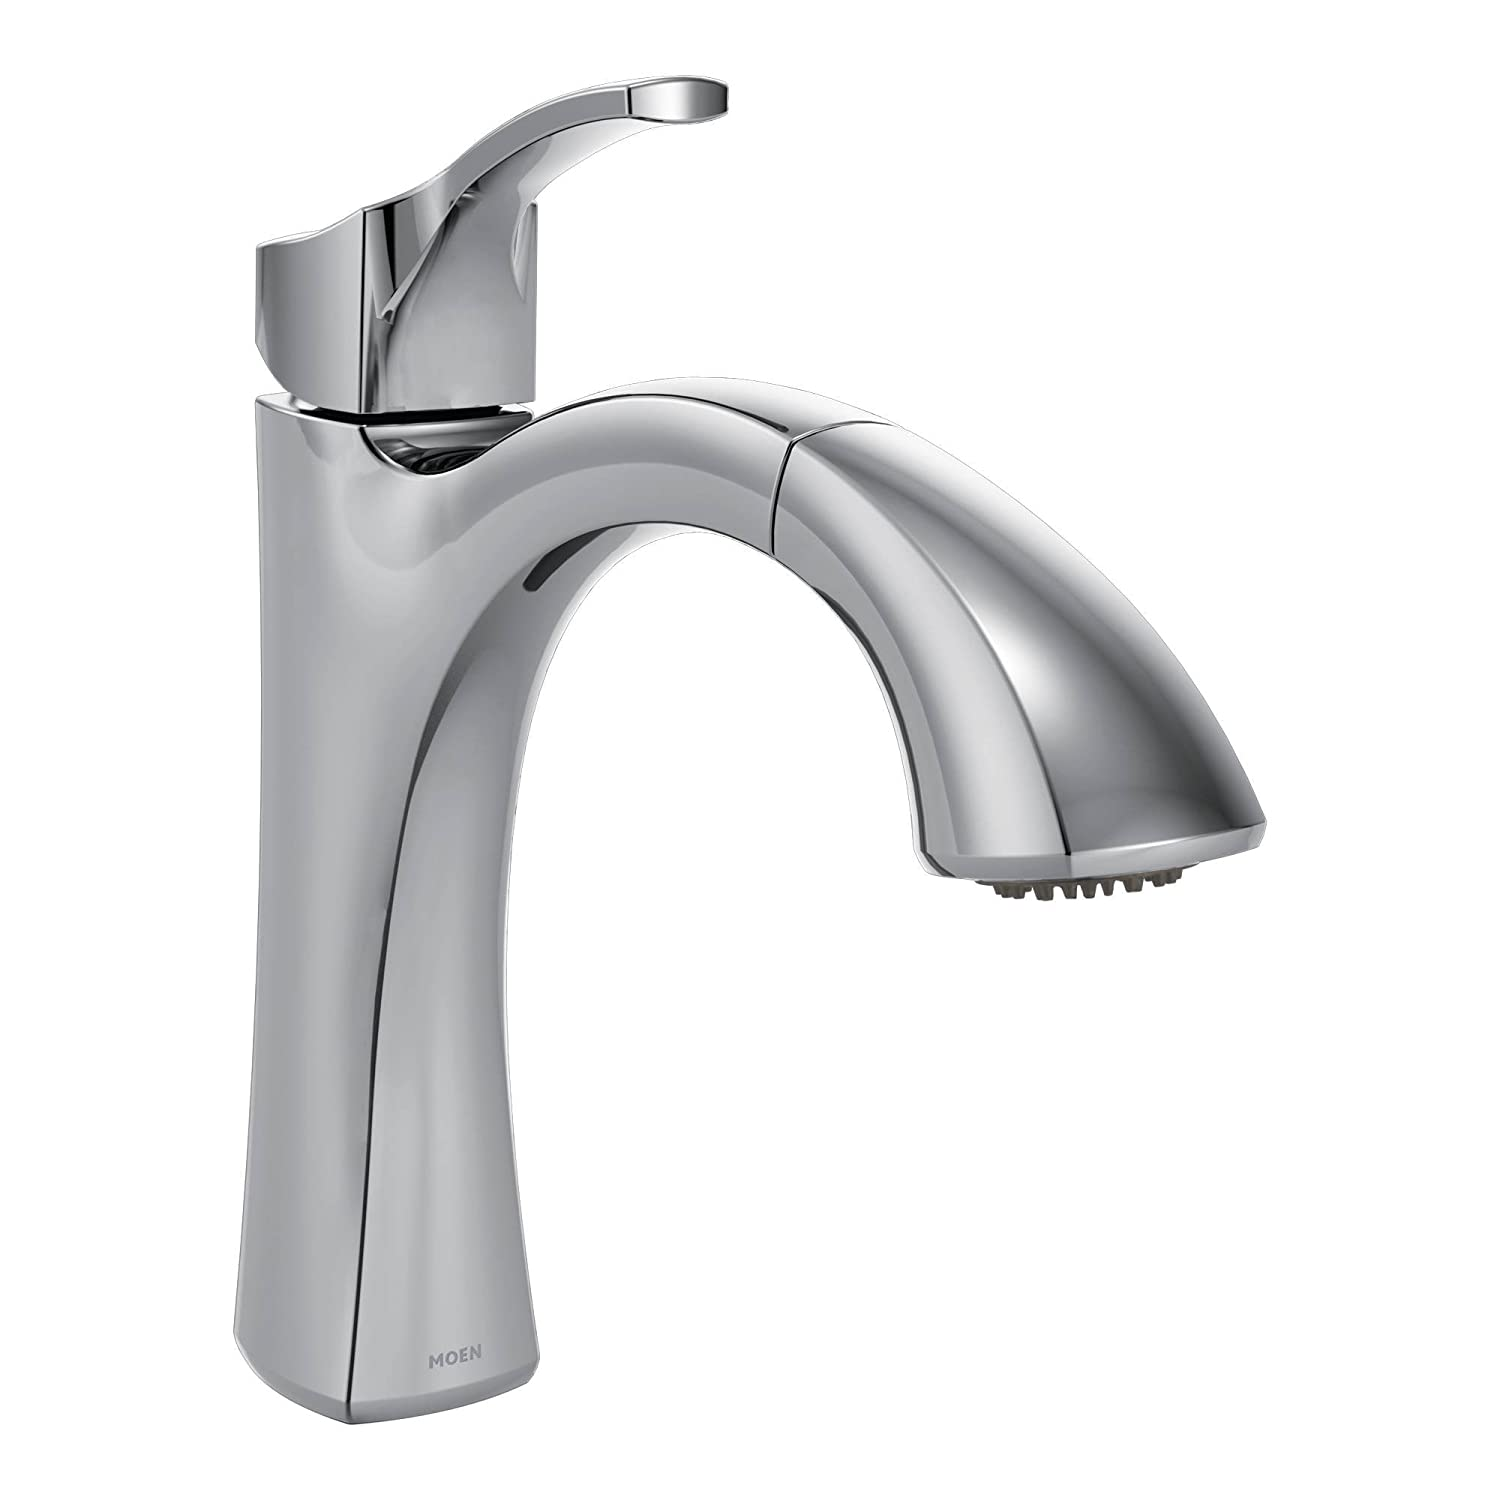 Moen Voss One-Handle High Arc Pullout Kitchen Faucet Featuring ...